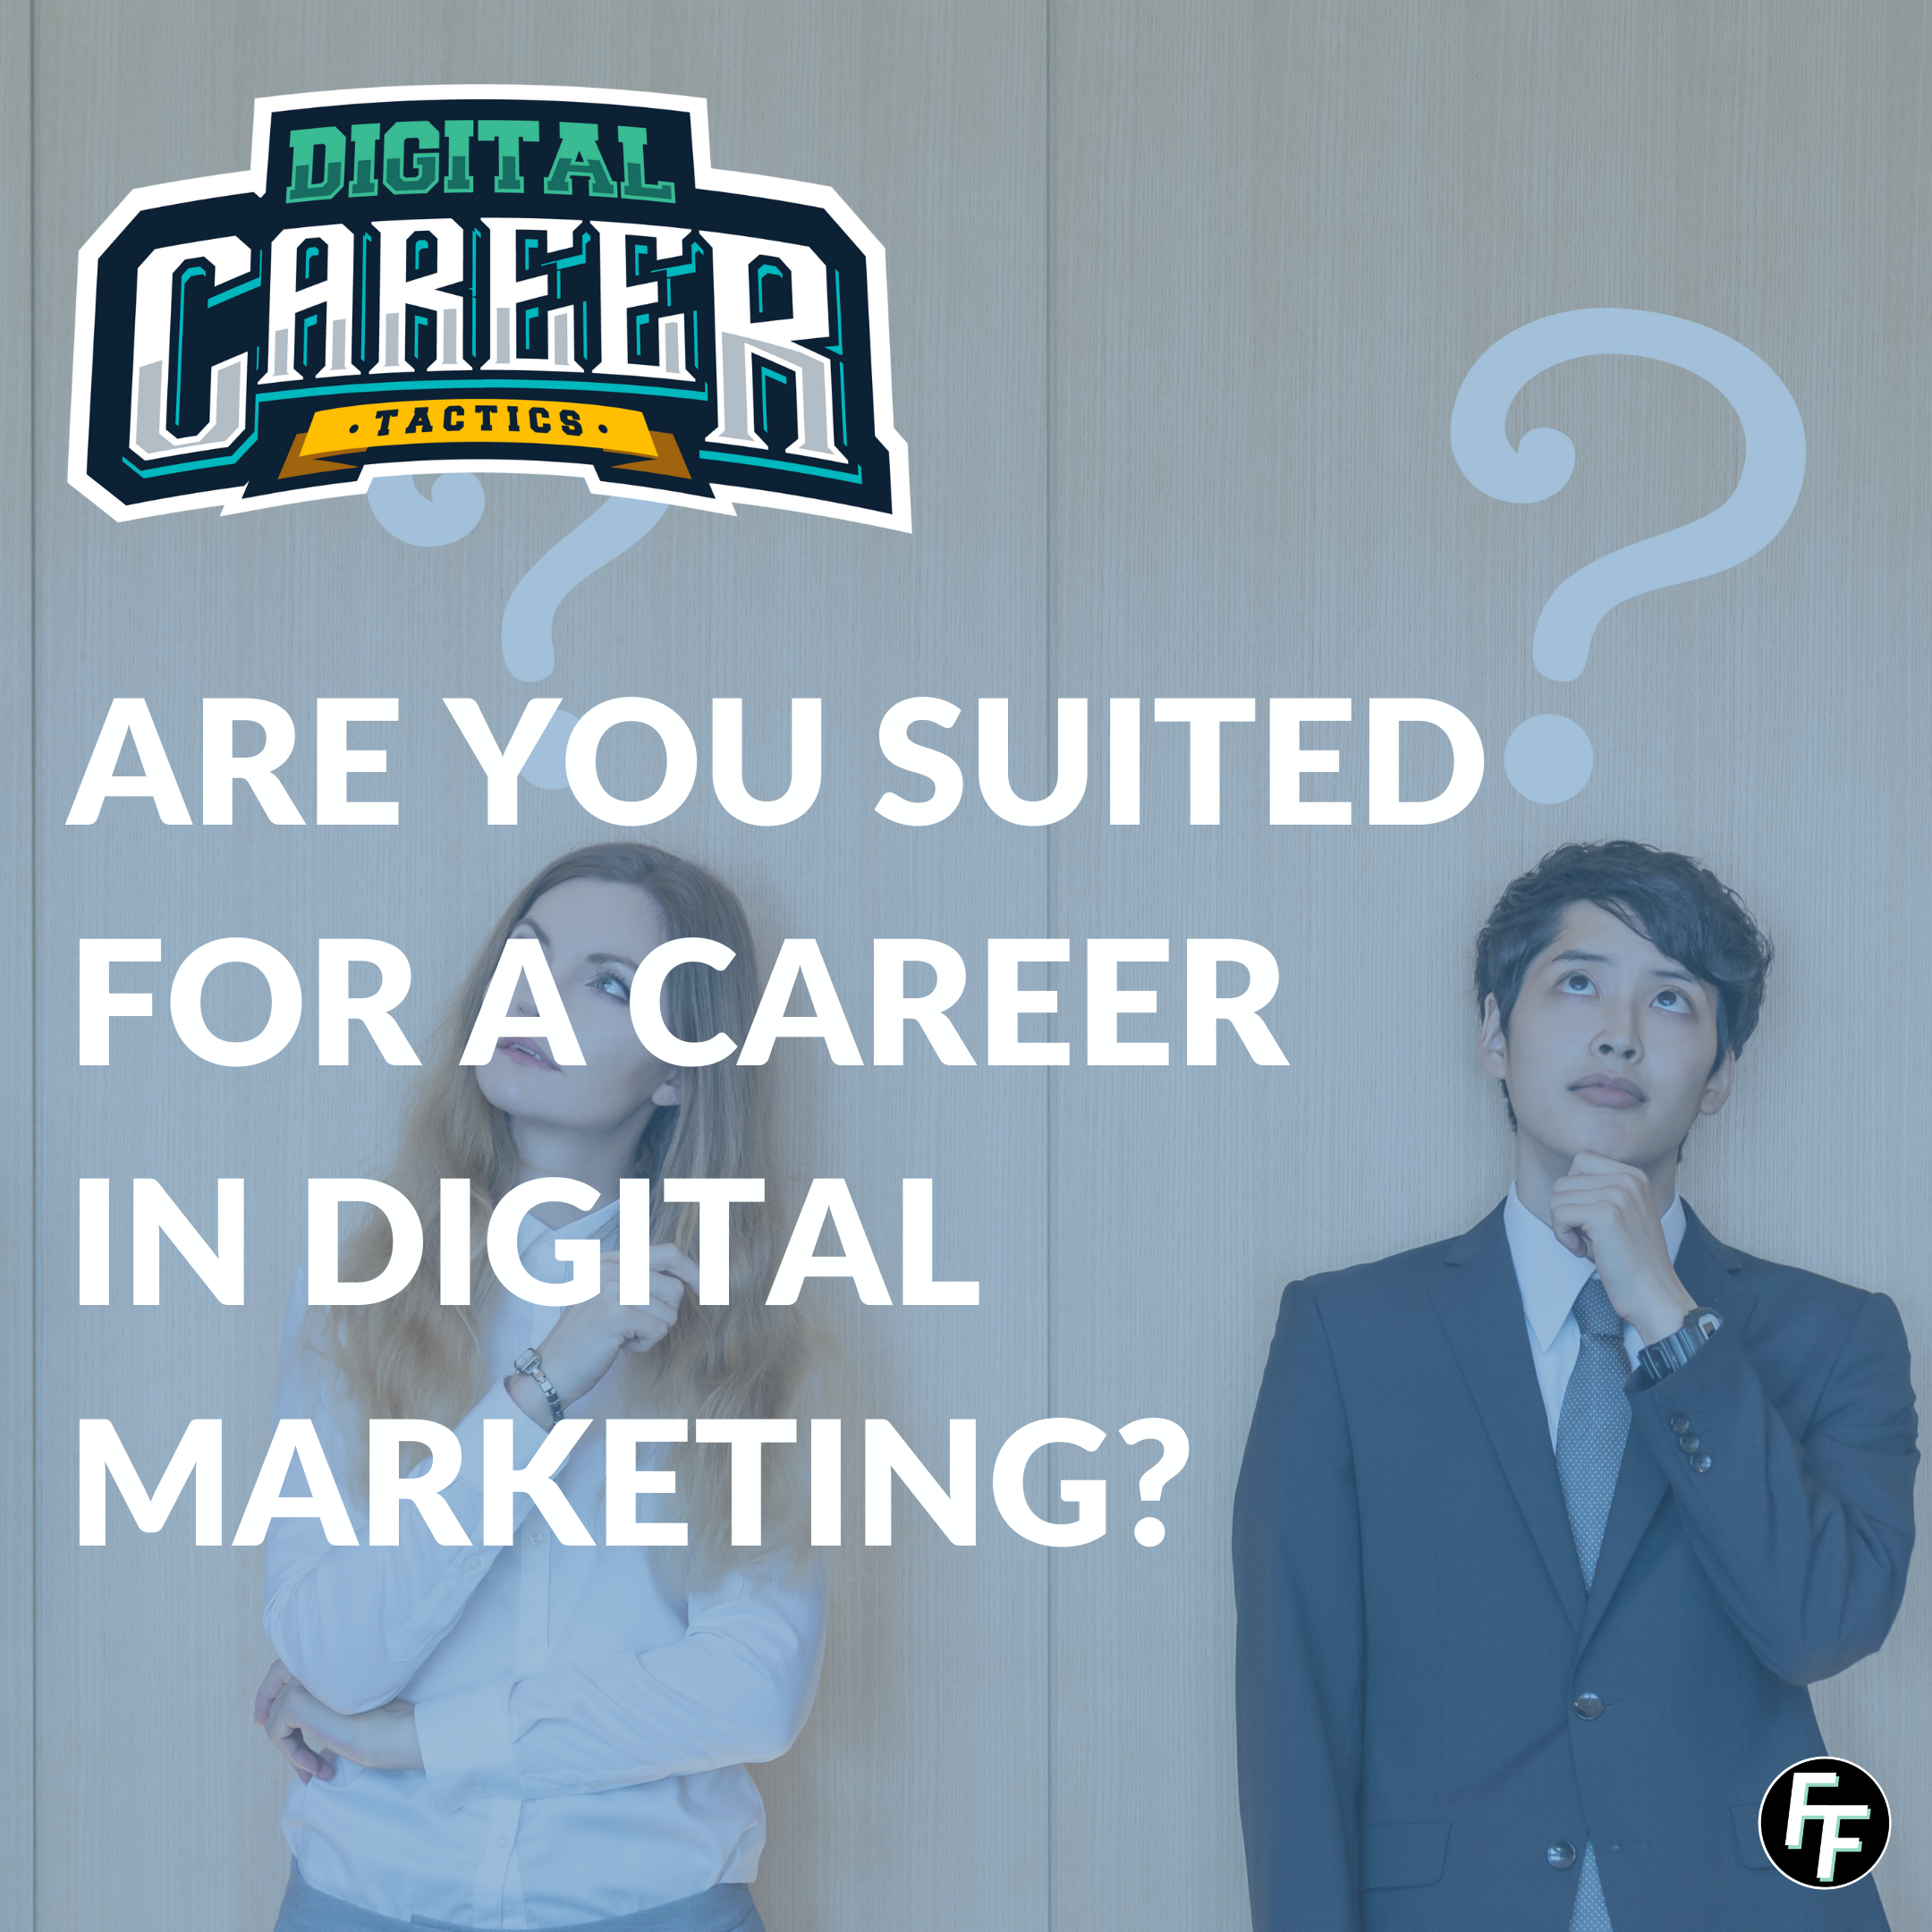 Are you suited for a career in digital marketing?